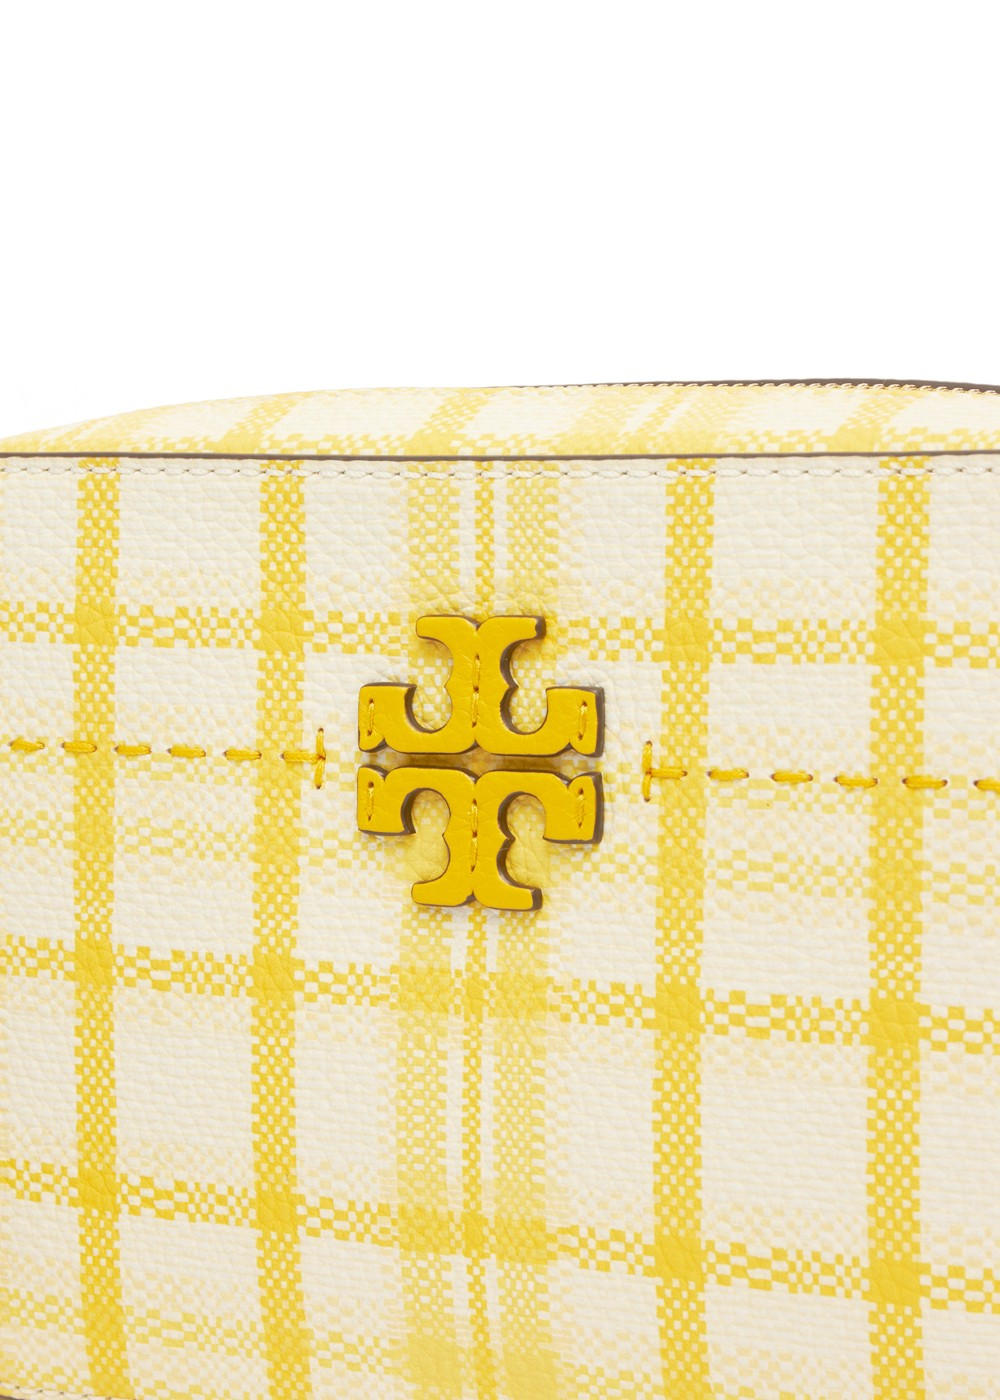 【最大47%OFF】MC GRAW PLAID CAMERA BAG|YELLOW CHECK IN PLAID|ショルダーバッグ|Tory Burch